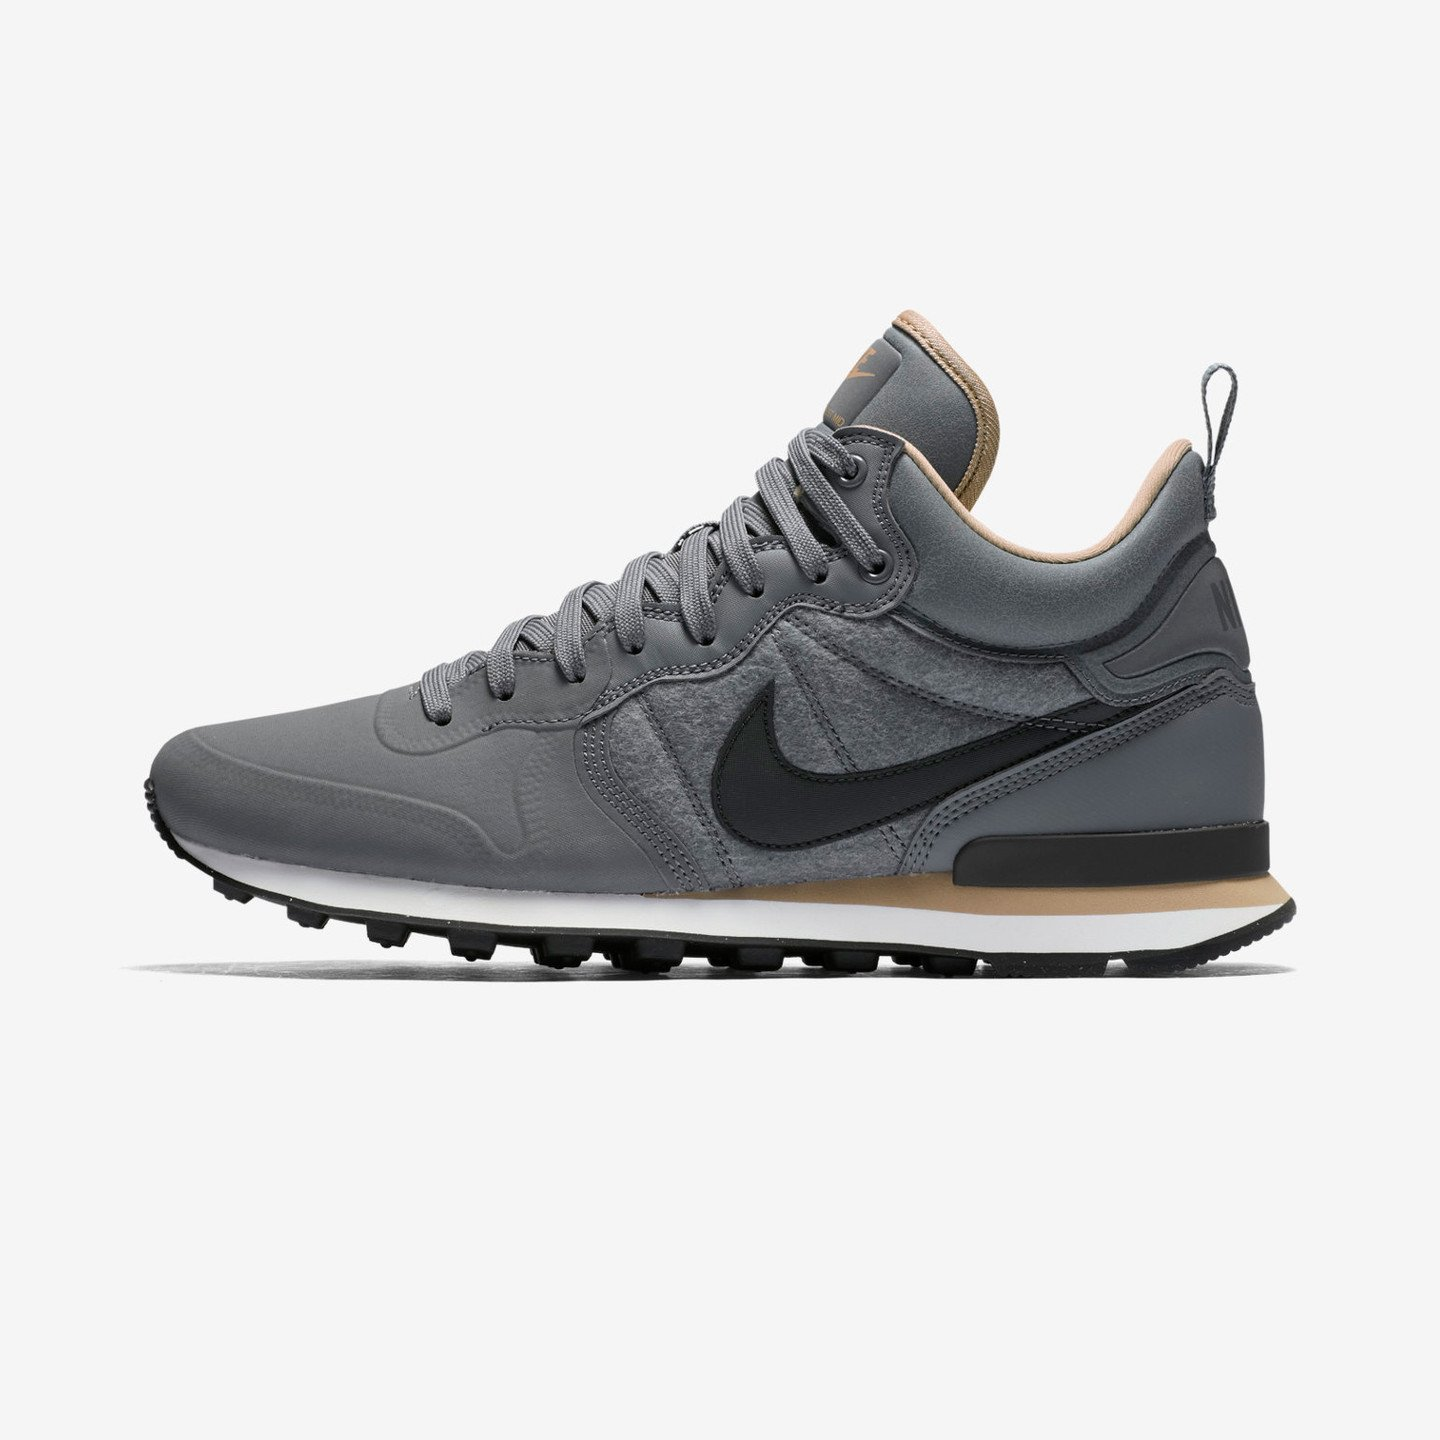 Nike Internationalist Utility 'Wool Pack' Cool Grey / Deep Pewter 857937-003